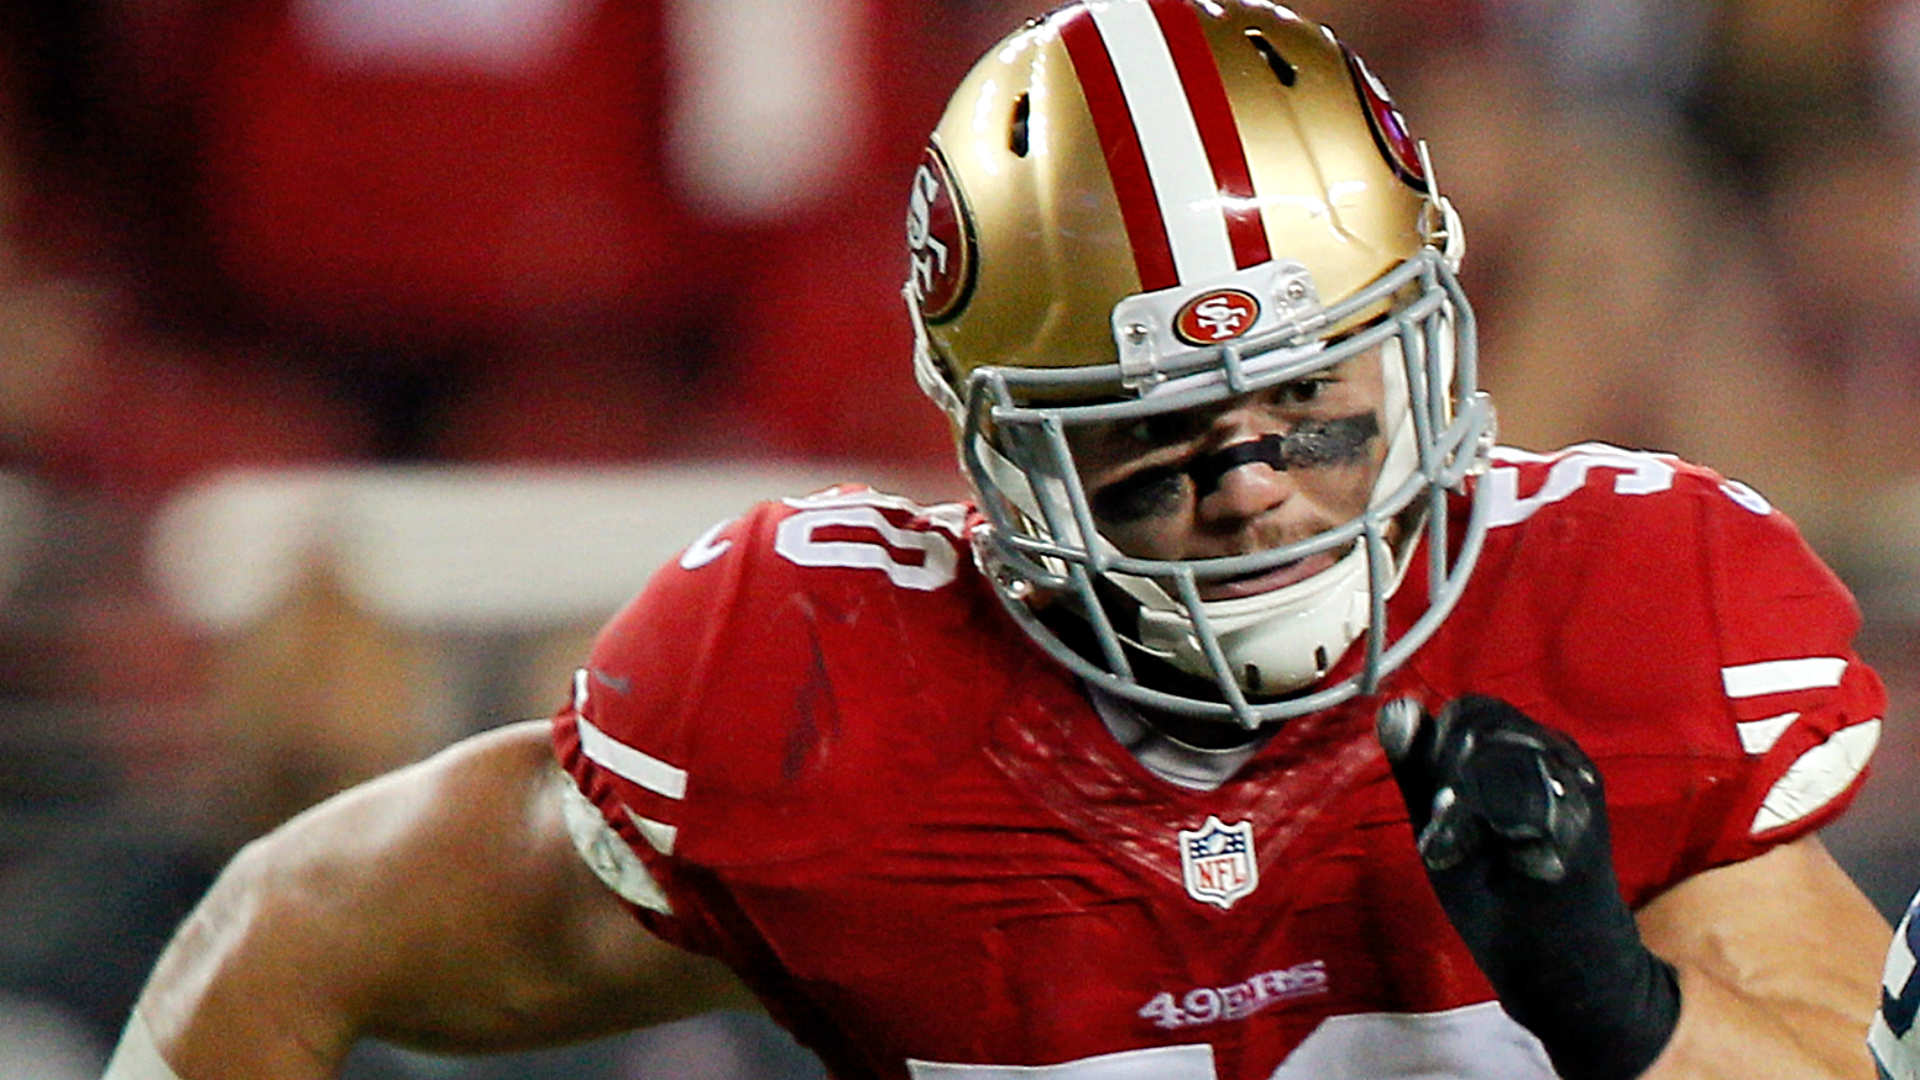 Former 49ers LB Chris Borland says health more important than money